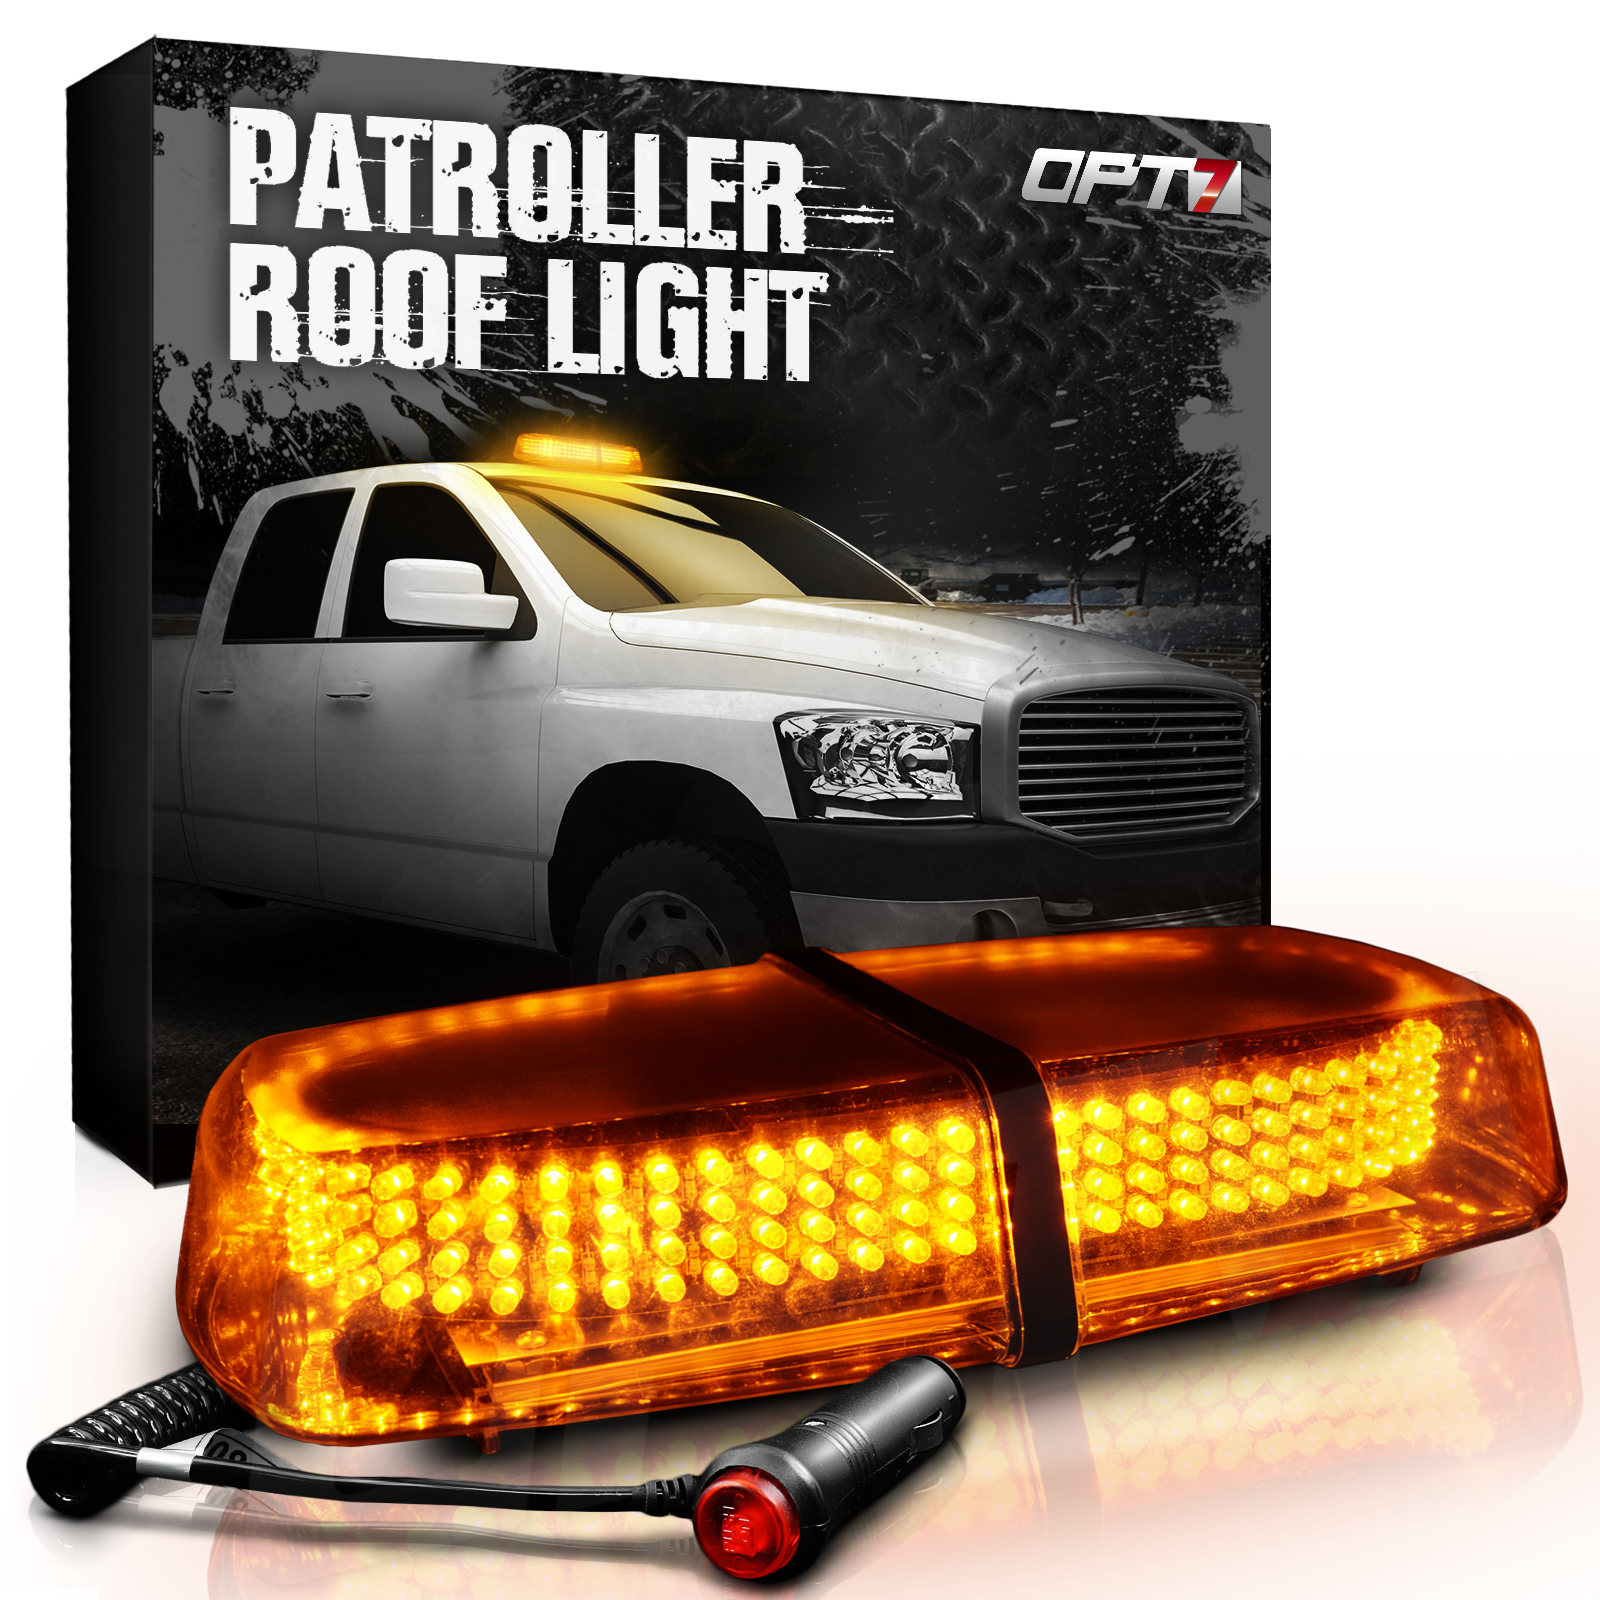 OPT7 Patroller Amber Roof Light - Hazard Warning Flash Modes - Waterproof Protective Casing 240 LEDs - for Emergency Vehicle Safety Security Lighting, Traffic Control Cars, Snow Plow Trucks, Volunteer